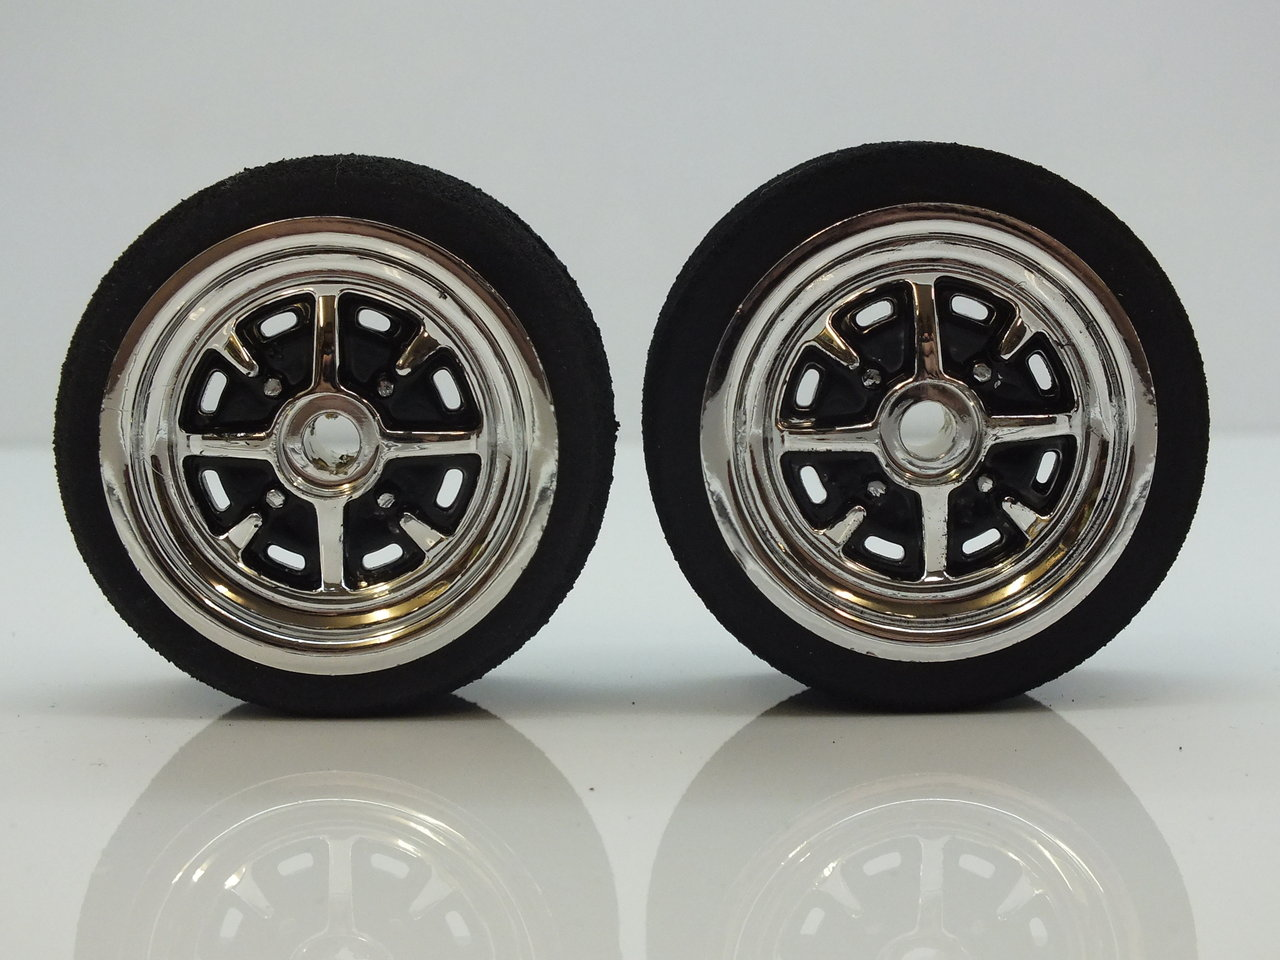 Chrome and Black Hand Painted RoStyle Wheels and Tyres (UFRA Pink) Trued and Glued